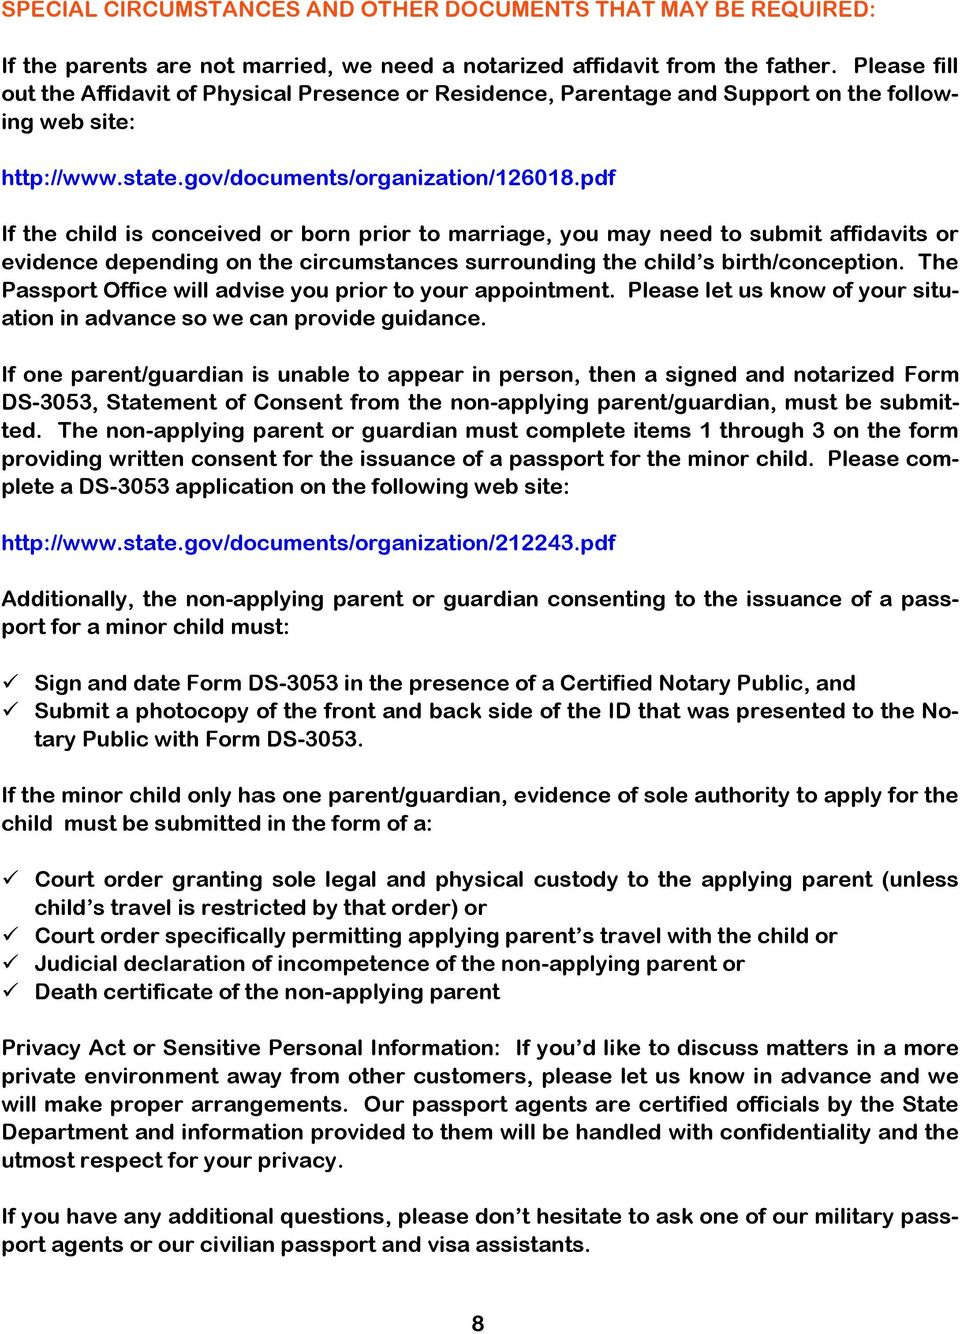 How to register your Newborn - PDF